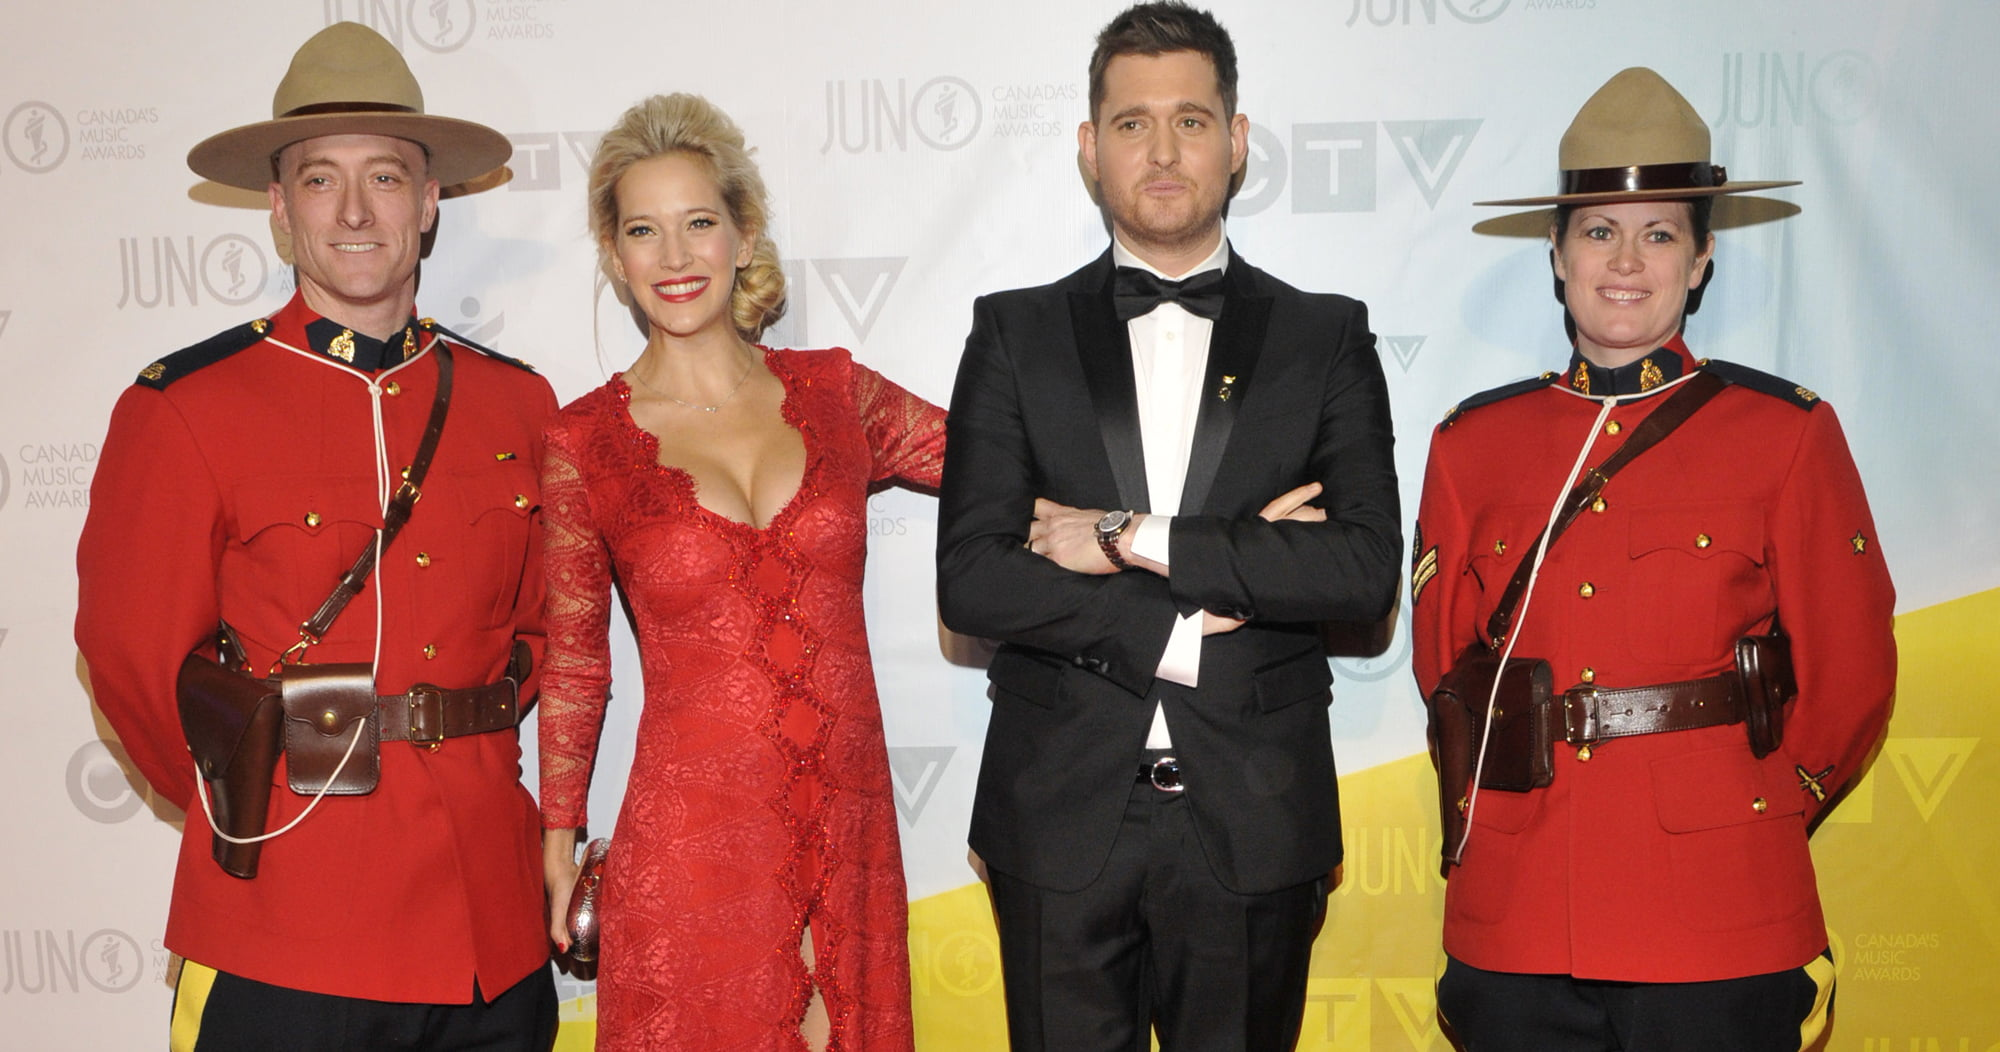 Host Michael Buble and wife Louisana Lopilato